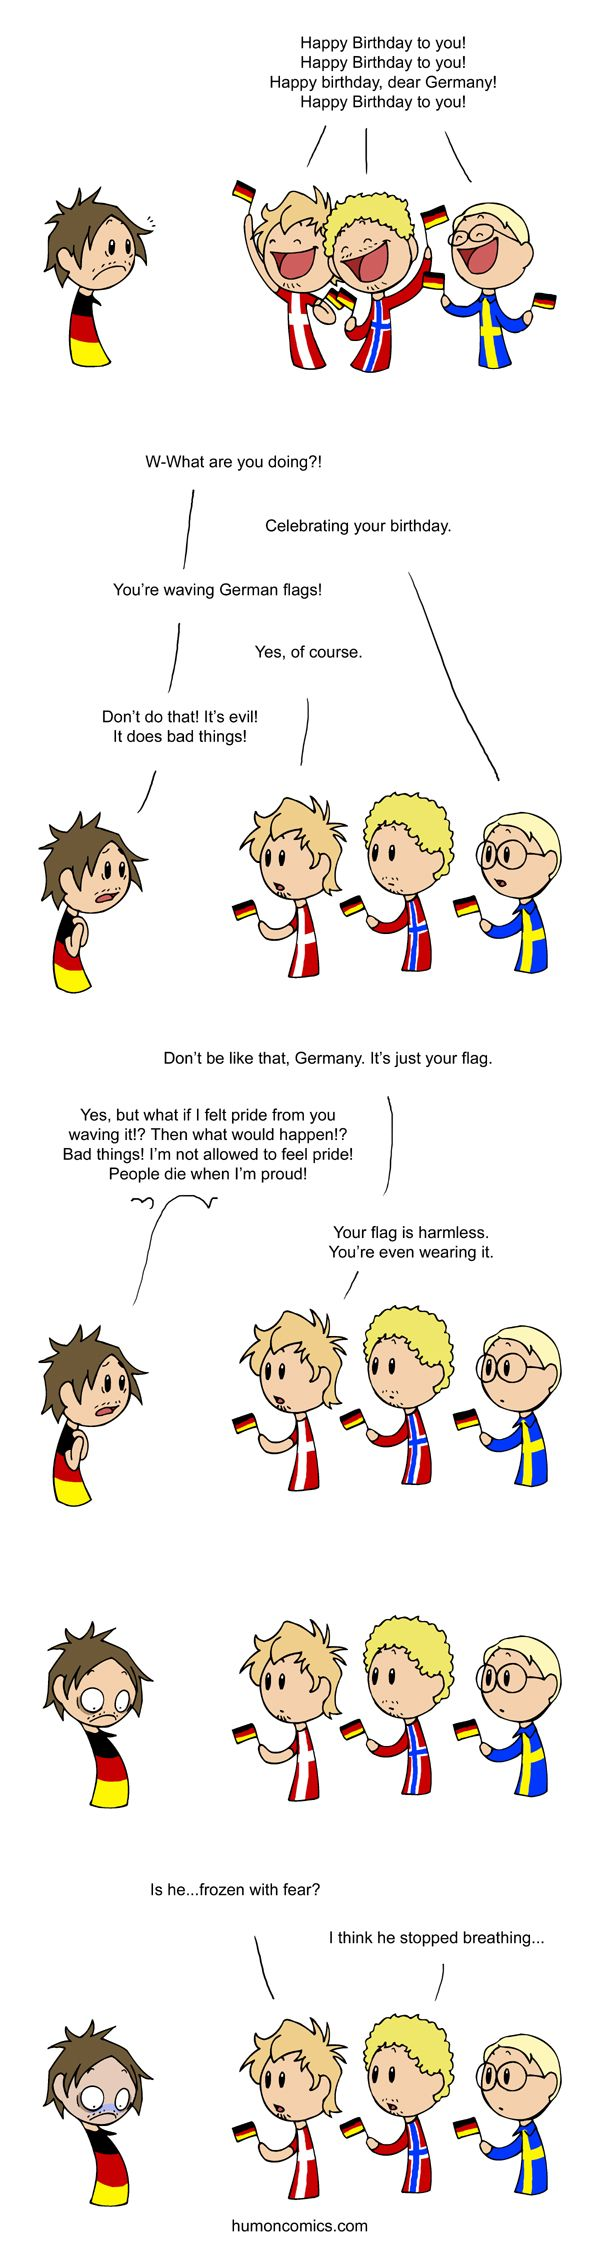 Haha, I just love the Germany jokes. Especially because they are oh so true...